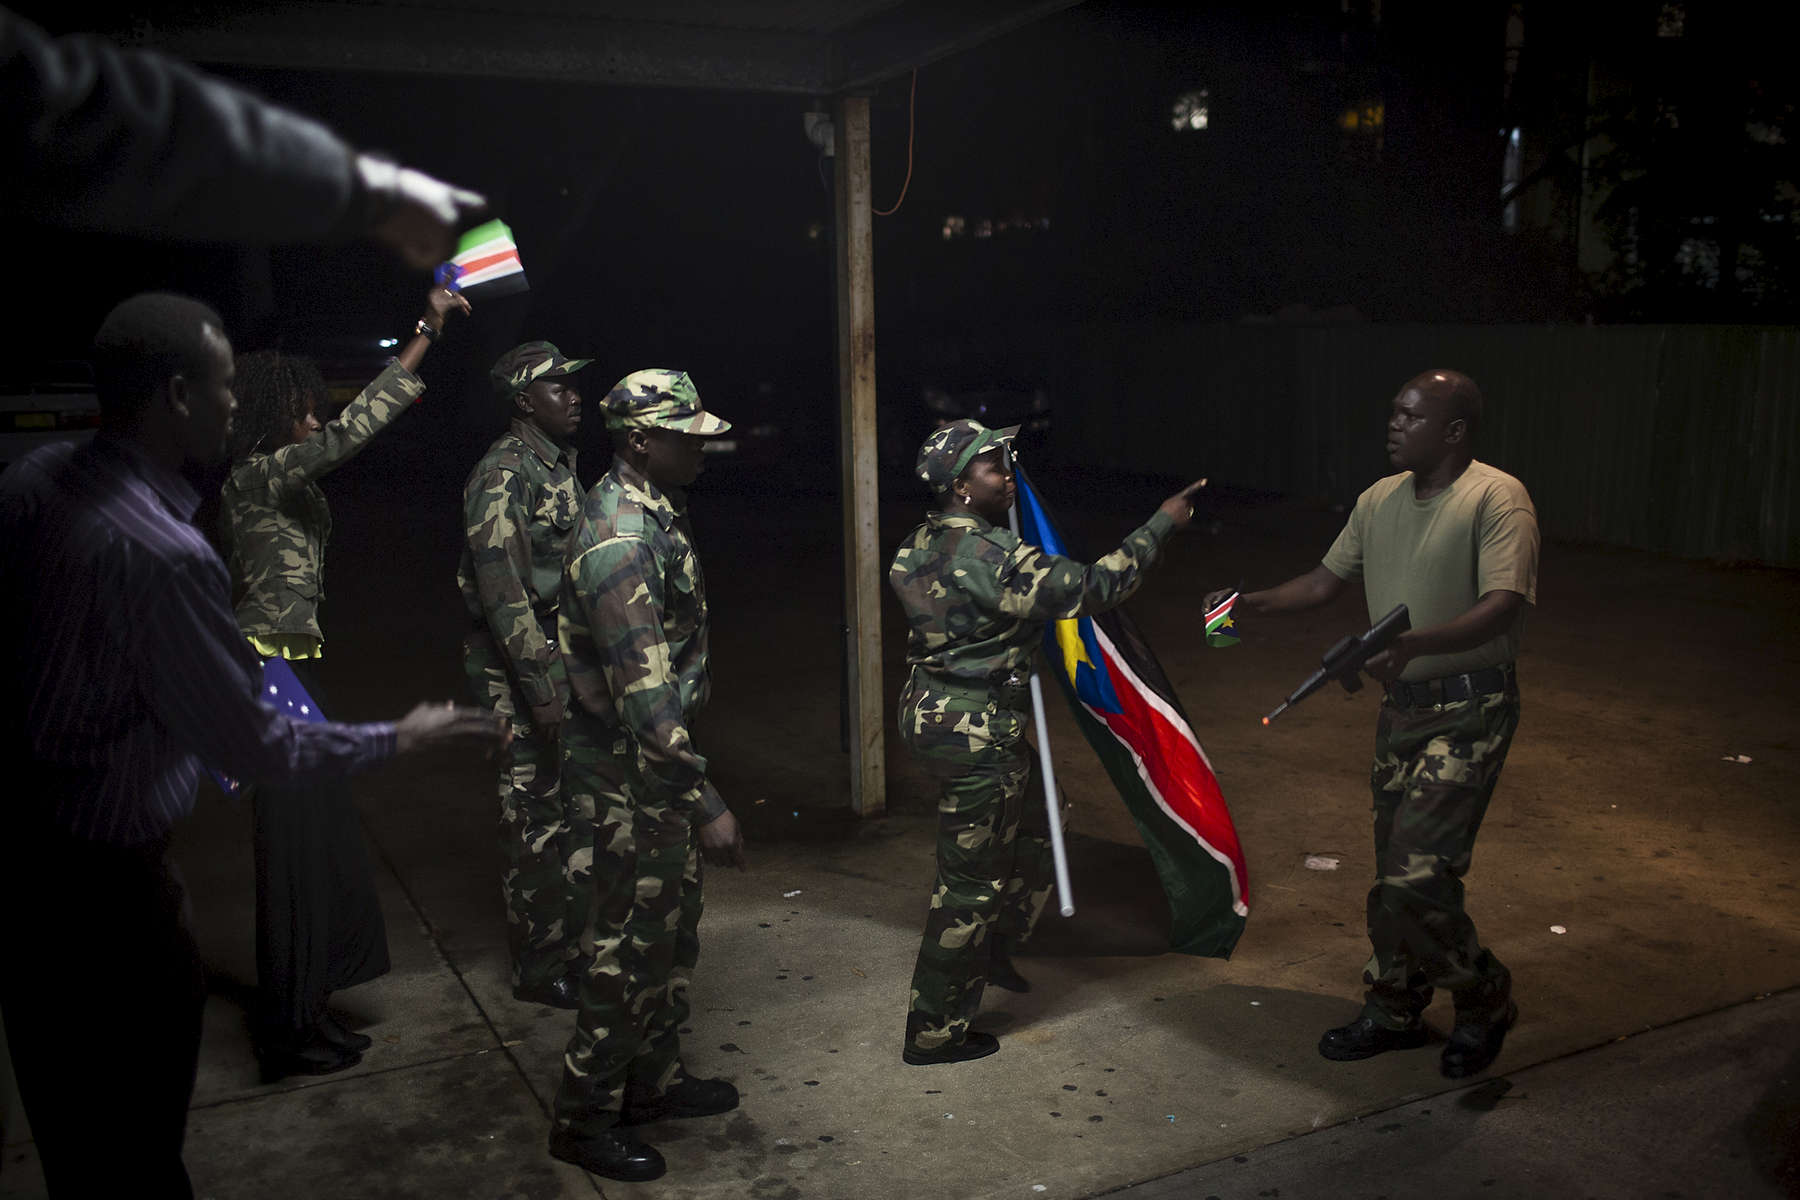 Dressed in army uniforms at a community hall in Western Sydney in 2013, supporters of the Sudan People's Liberation Army (SPLA) practice marching before returning inside the hall to perform at an event marking the 30th anniversary of the SPLA. The SPLA was founded as a guerrilla movement in 1983 and led by John Garang de Mabior. Since South Sudan's independence in 2011 the SPLA has become divided and conflict has ensued with major factions aligning with Dinka President Kiir and many others following Nuer former Vice-President Machar who now leads the SPLA-IO (in opposition).  After a 18-month war that has ravaged the world's newest country, the two leaders Kiir and Machar signed  a peace deal on August 27th 2015.